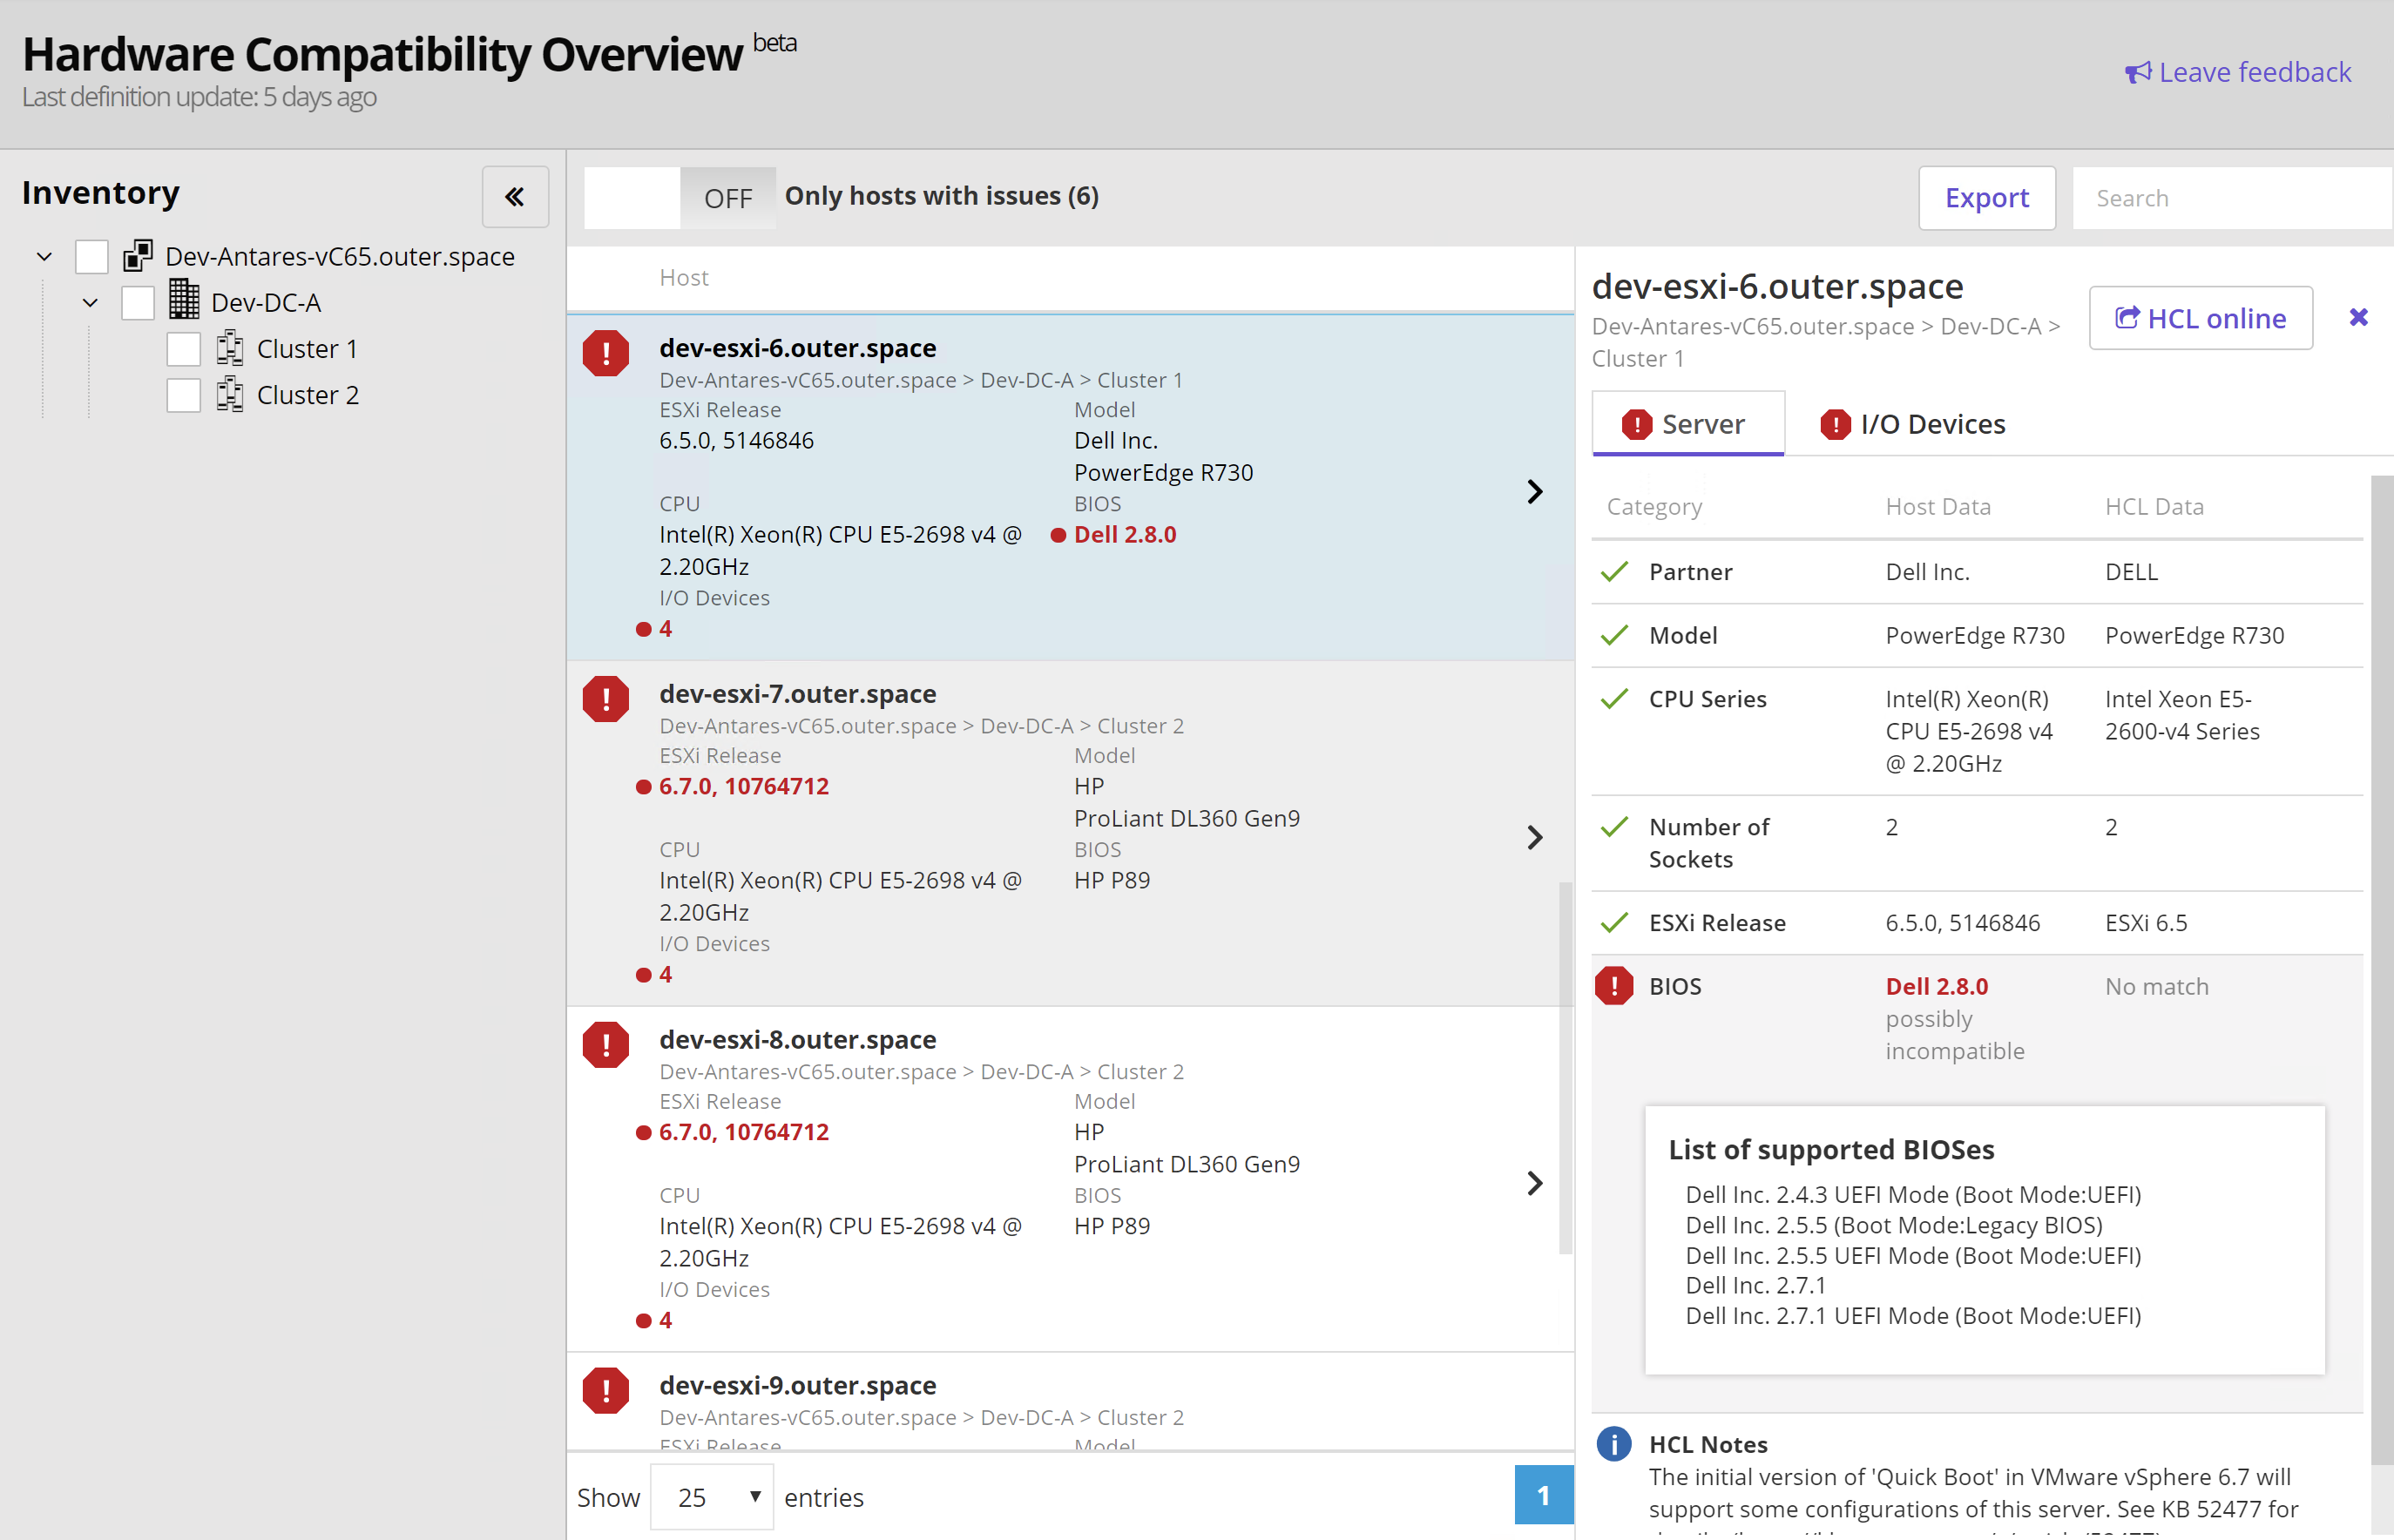 Hardware Compatibility beta Overview detailed view